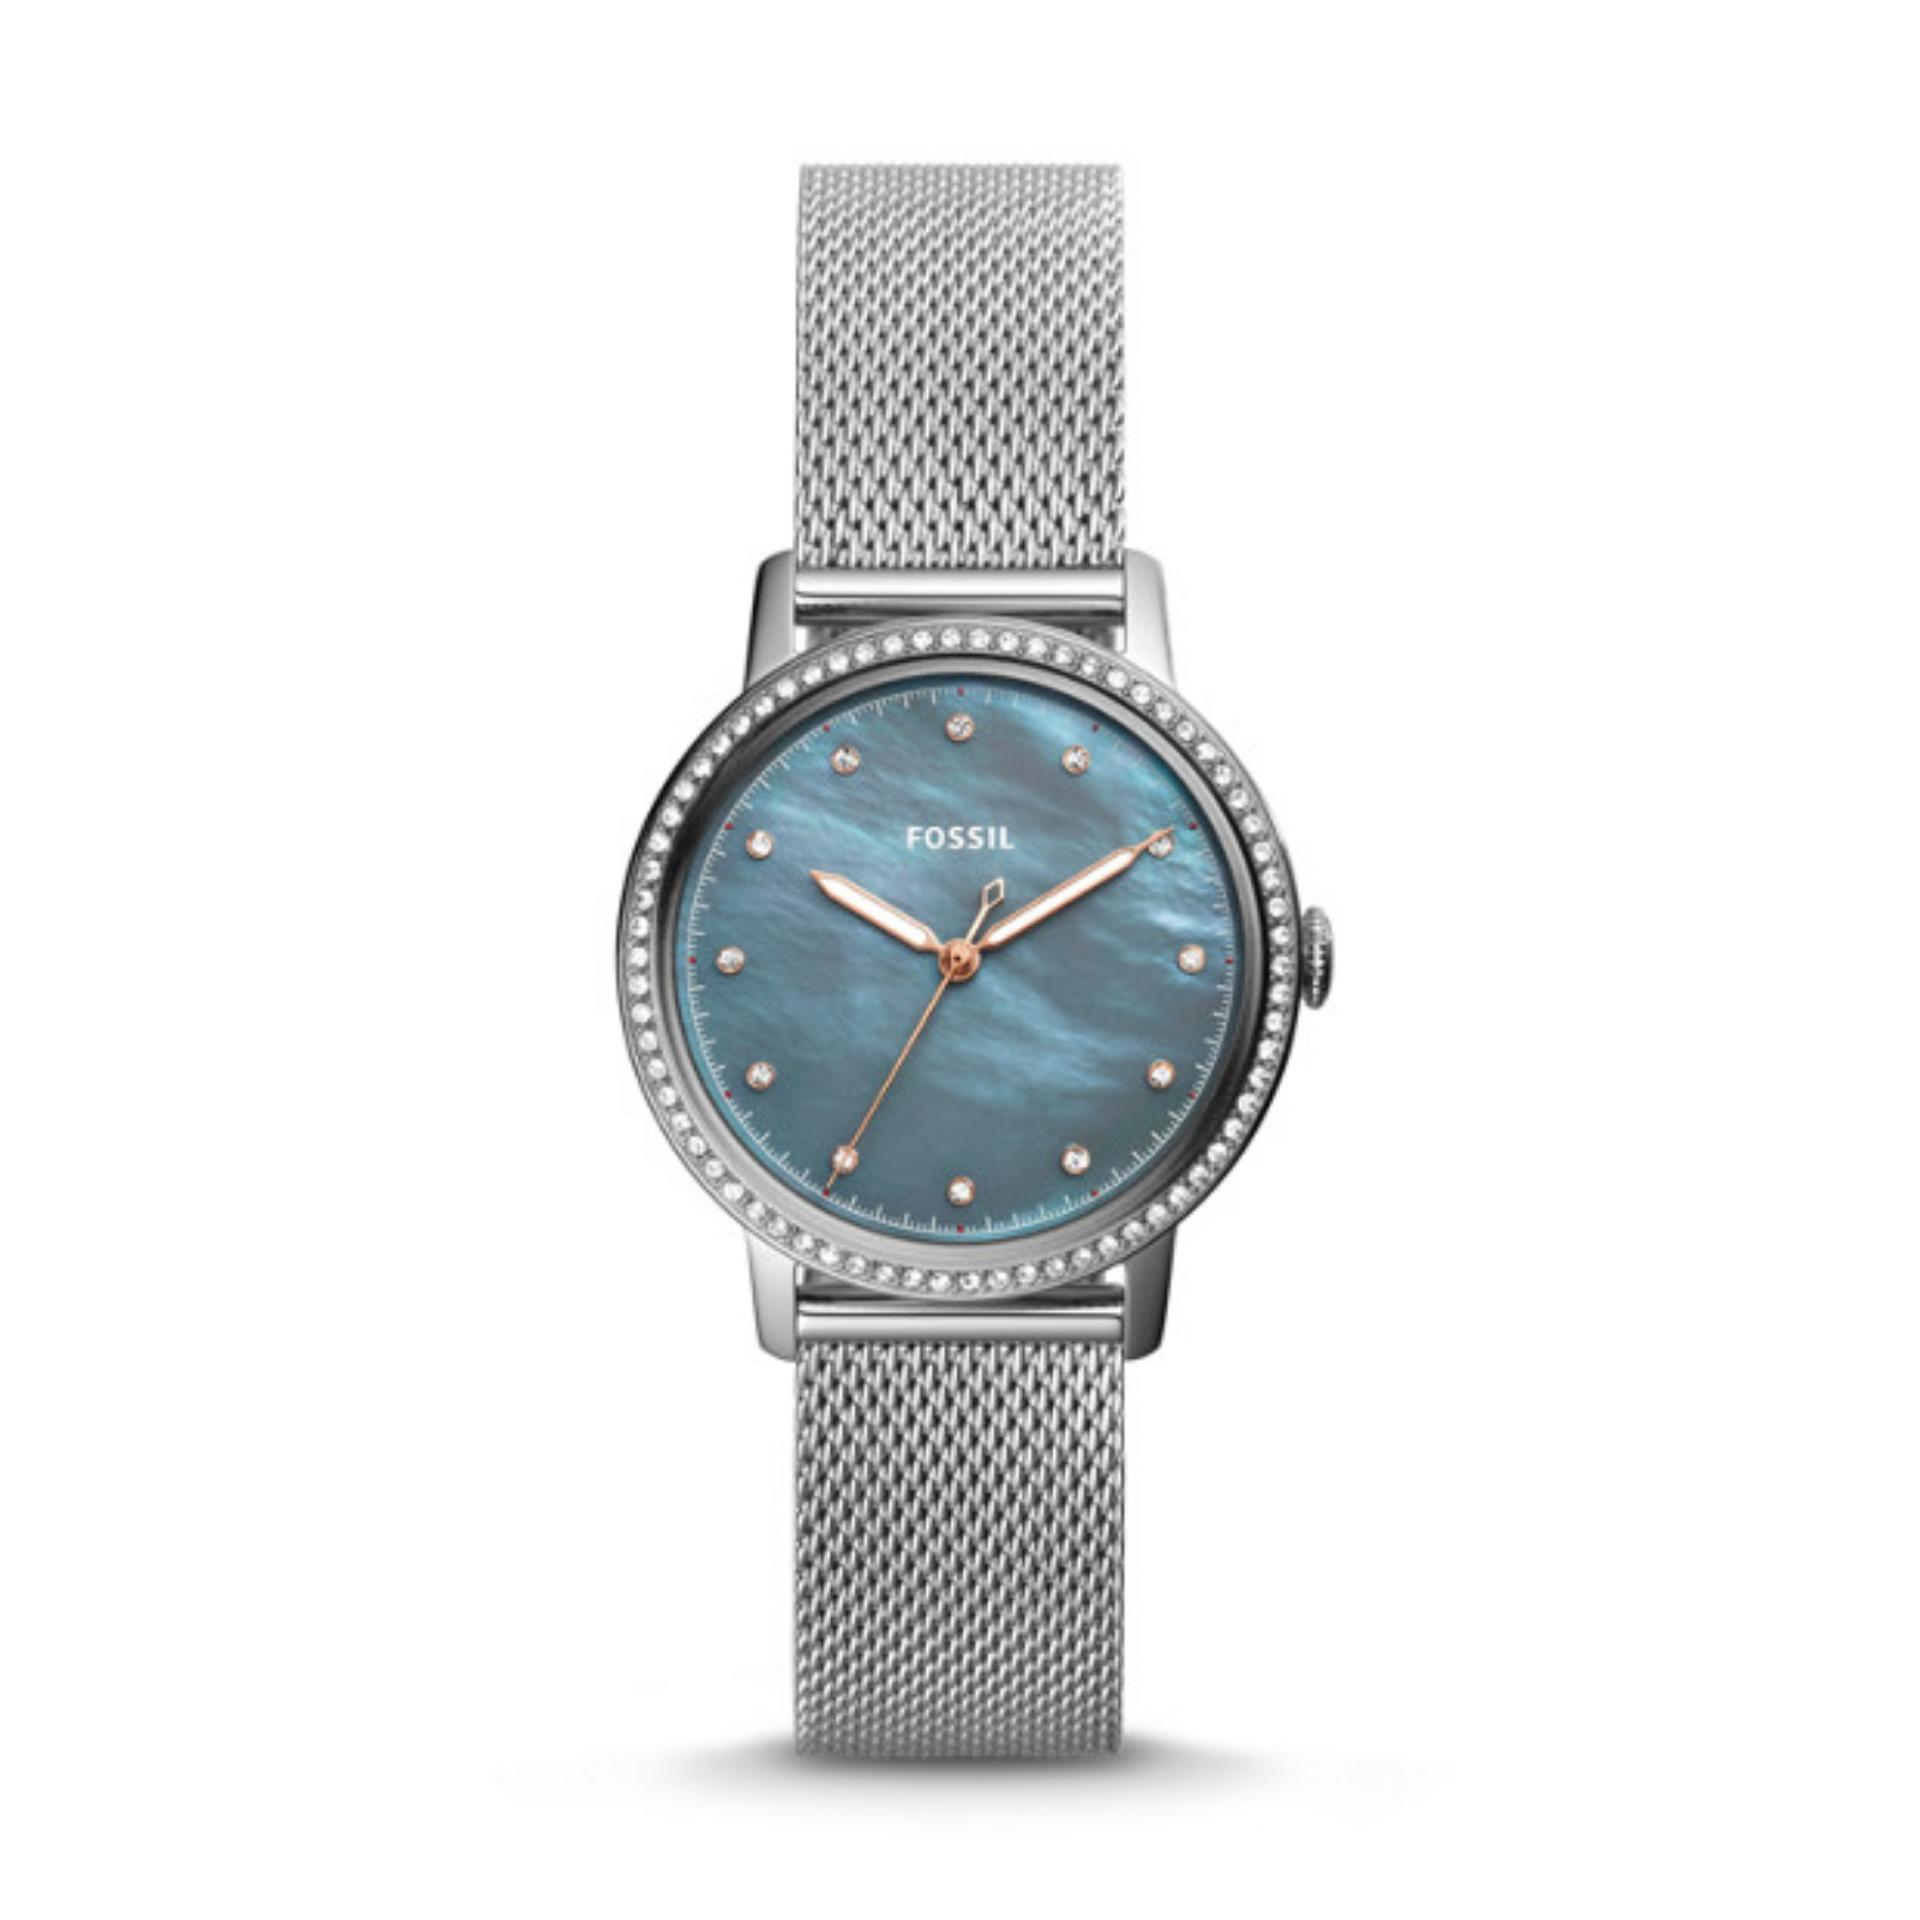 96ddecb1c71 Fossil Philippines - Fossil Watches for Women for sale - prices ...